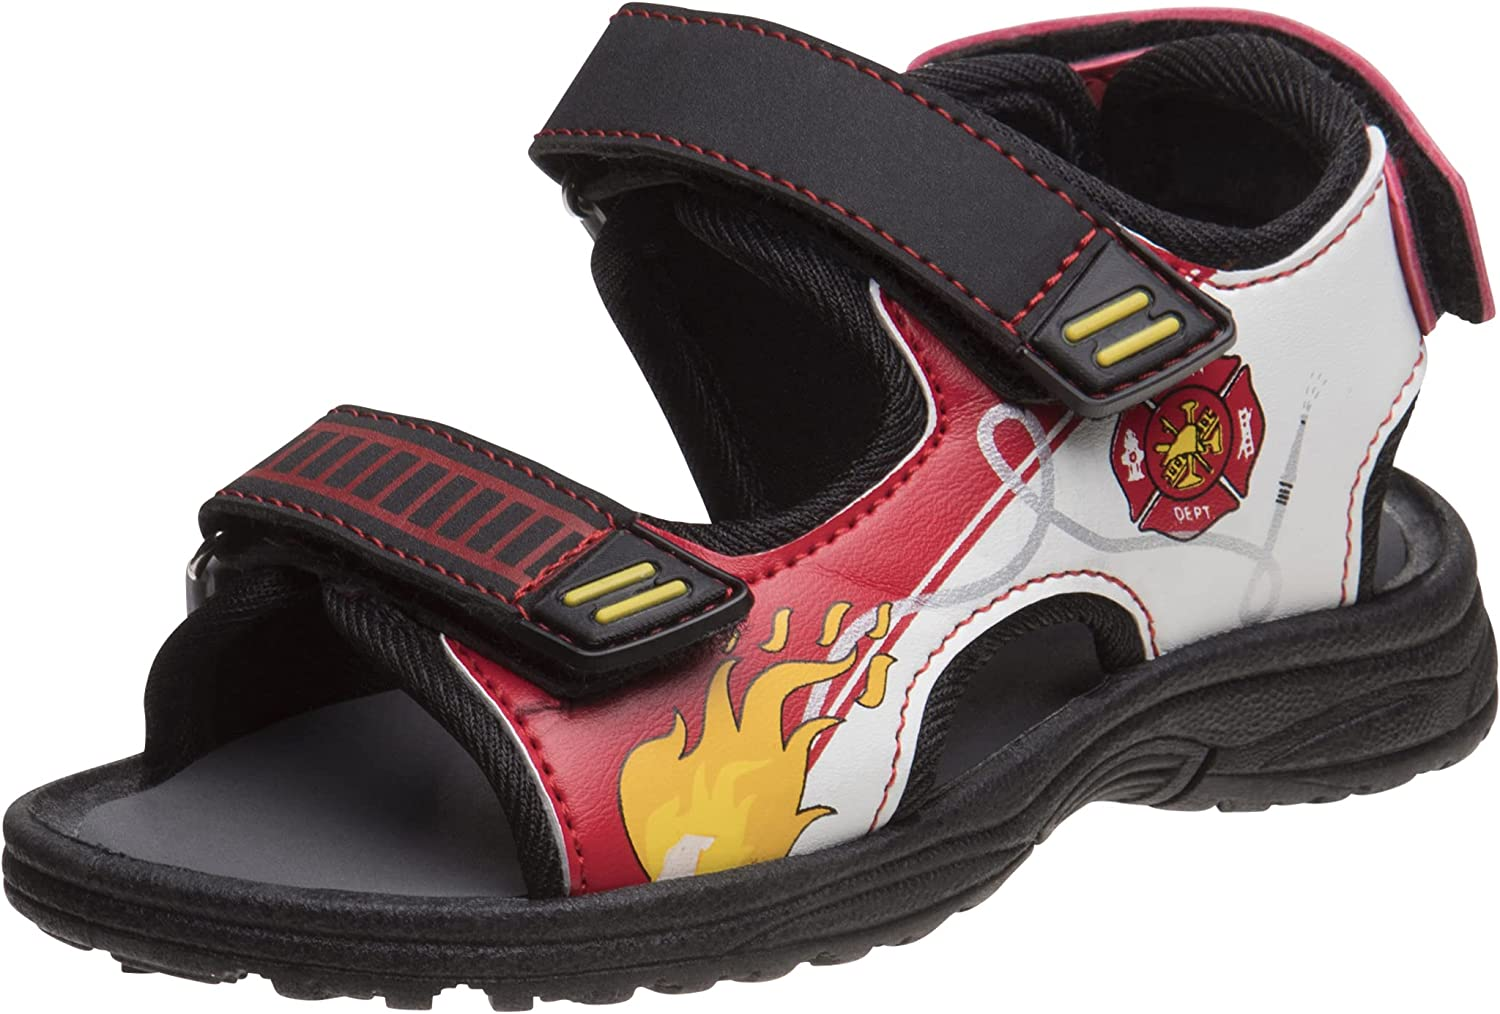 Under blast sales Rugged Bear Toddler Boys' Sandals - Toe Sports Strap Double Open Outlet ☆ Free Shipping